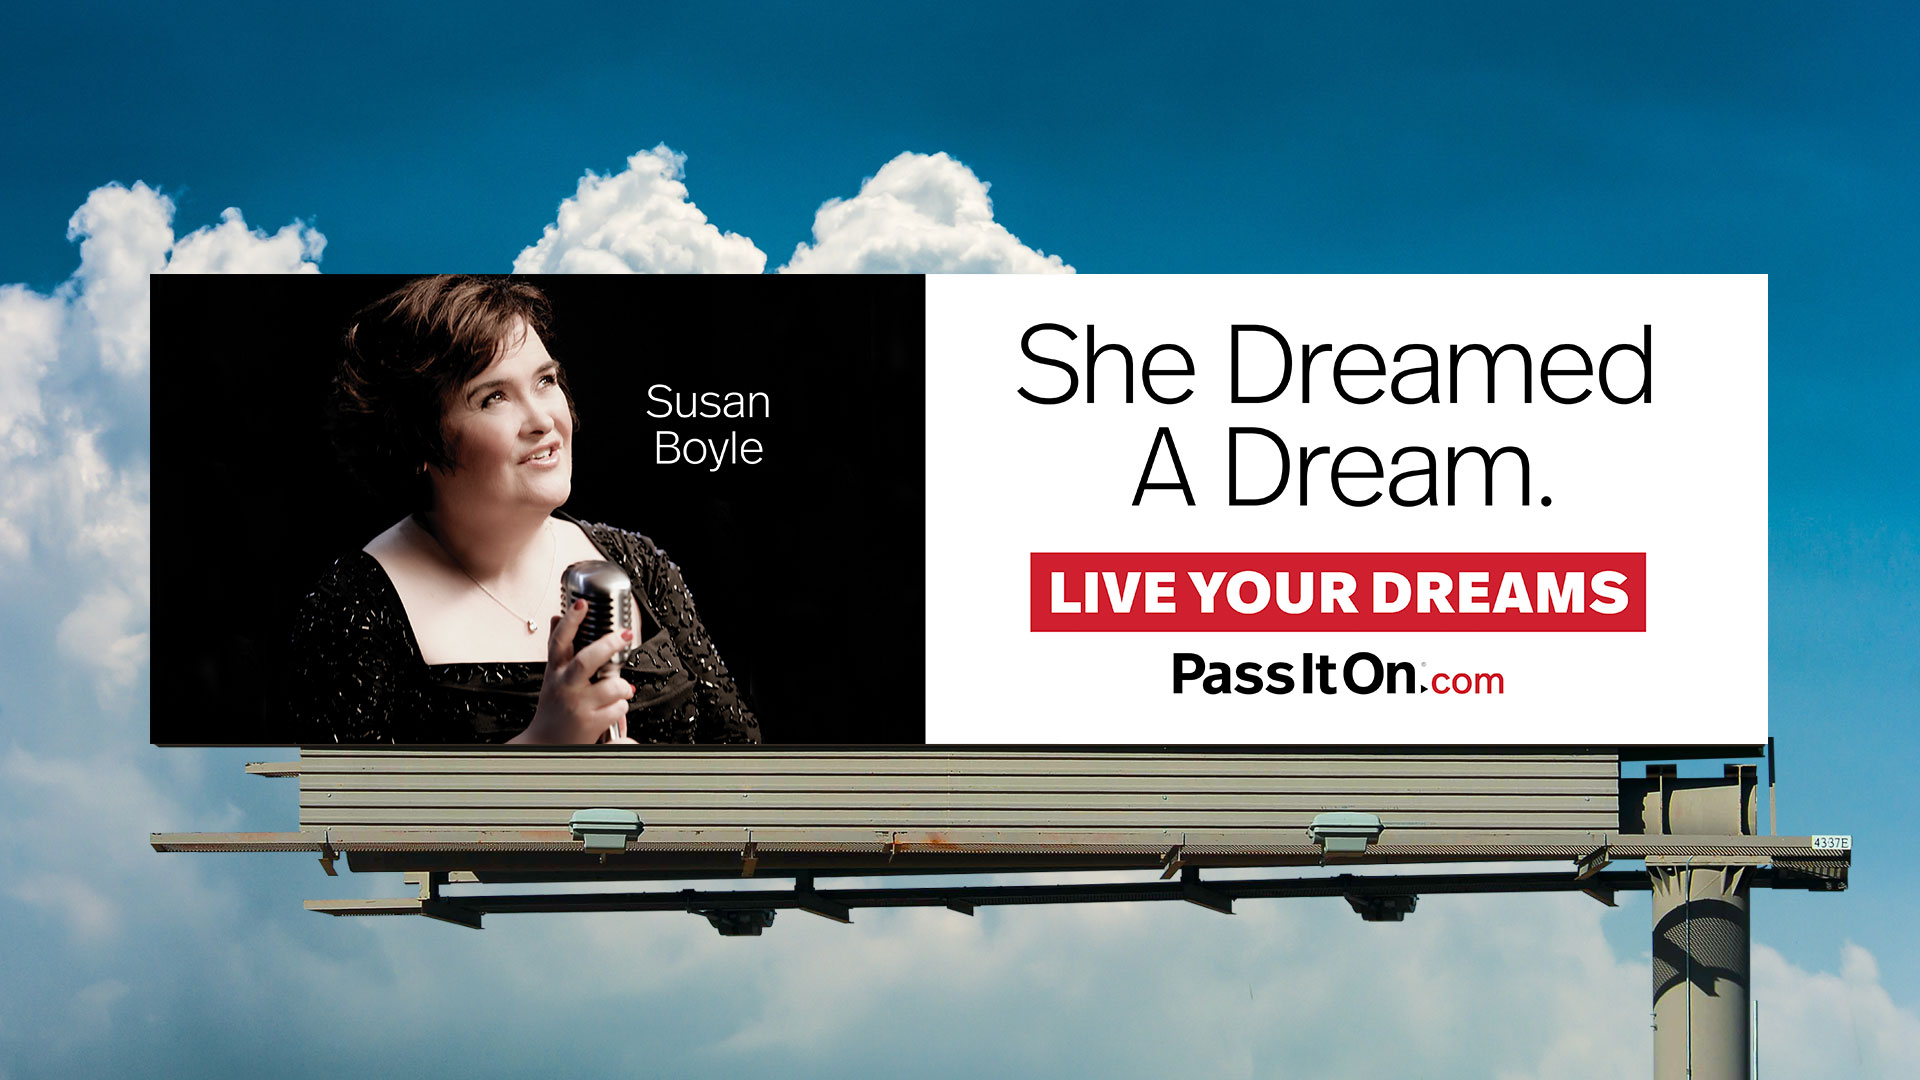 Live your dreams susan boyle